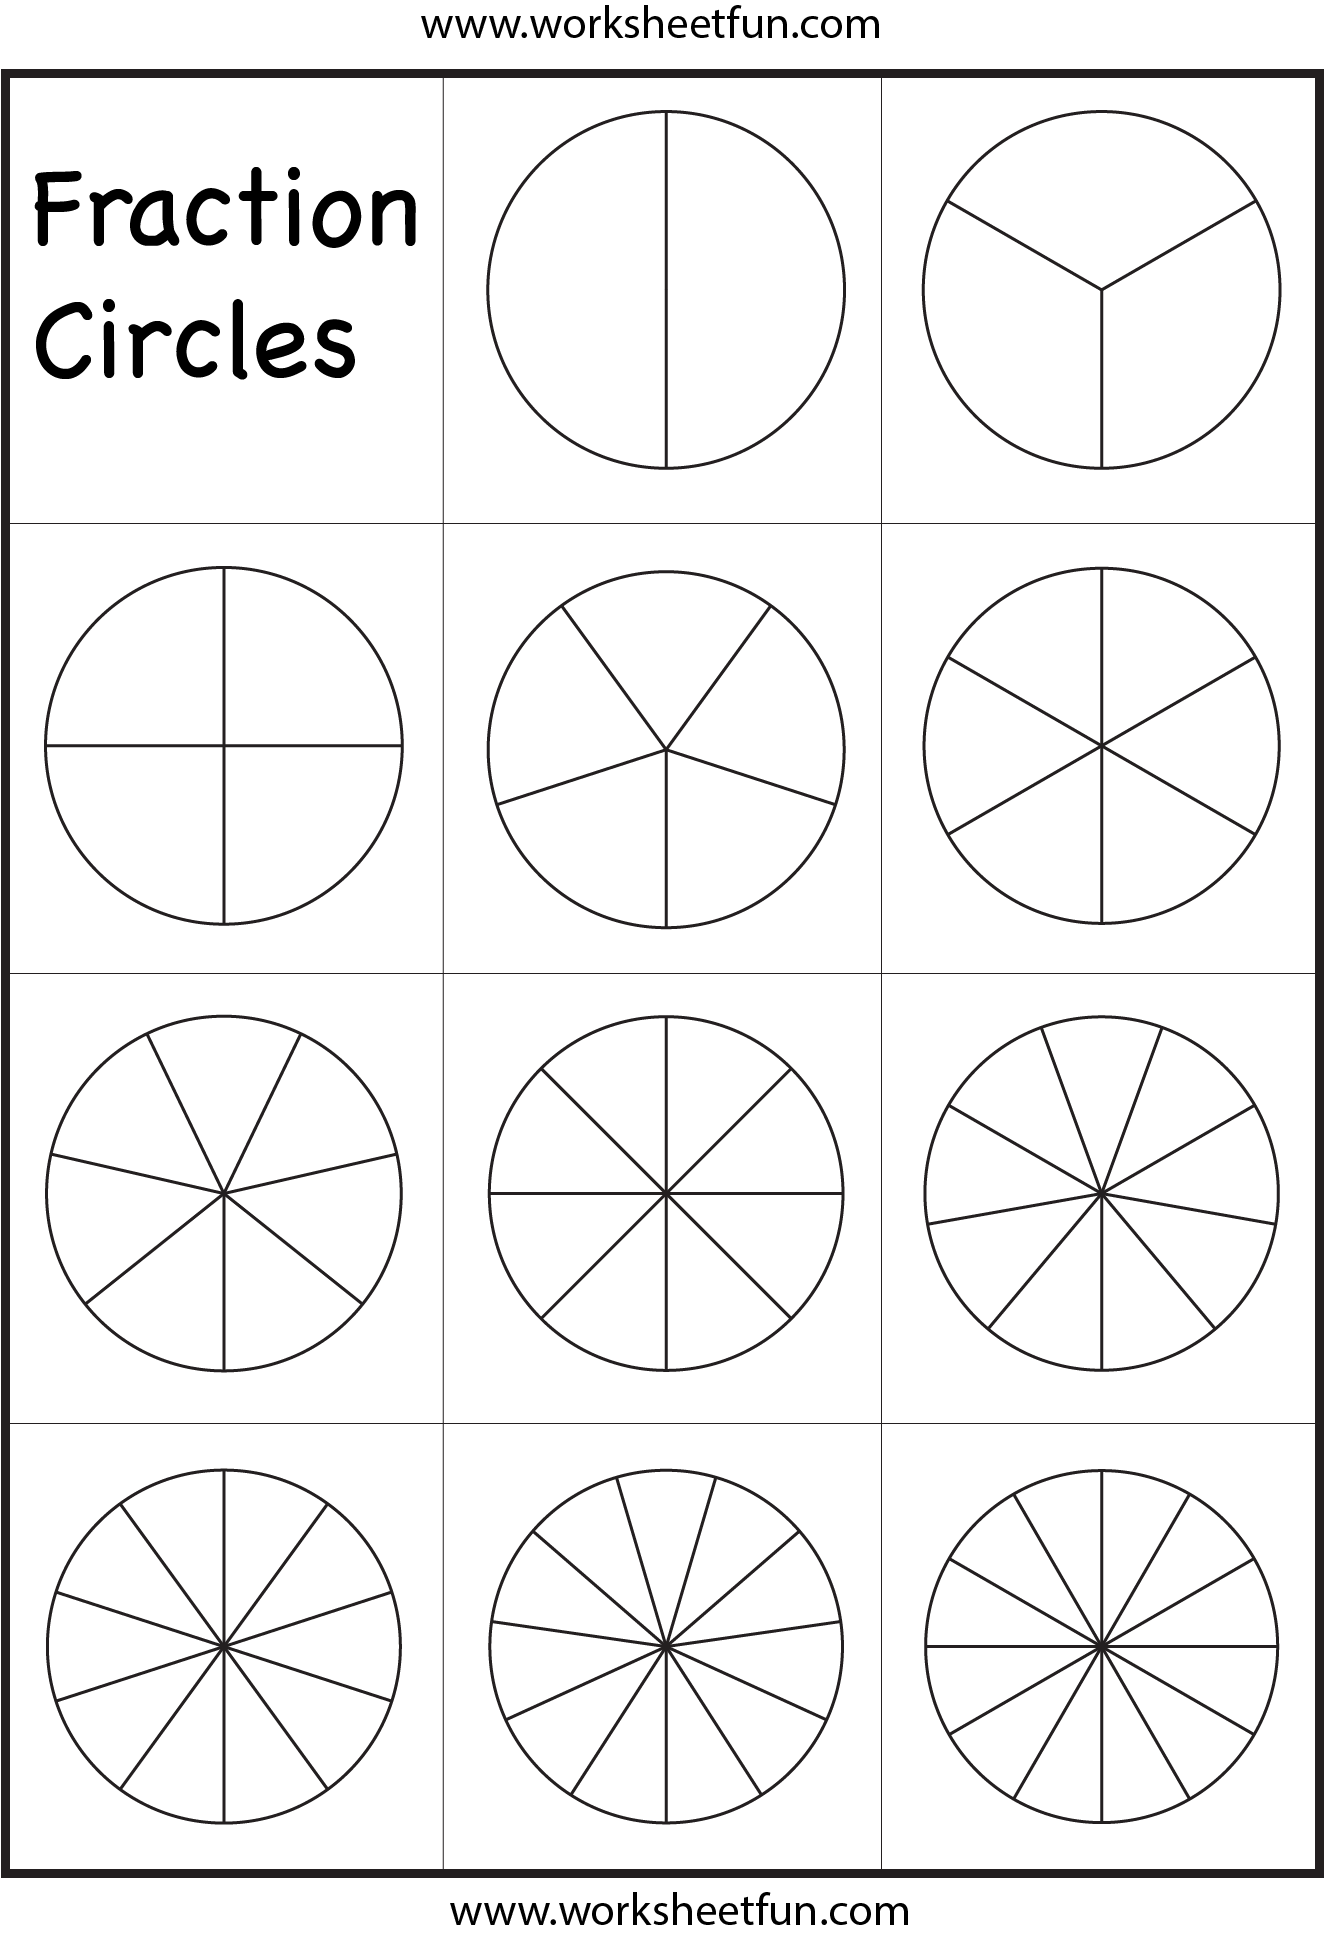 photograph about Printable Circle of Fifths Wheel named Portion Circles Template Printable Portion Circles 1